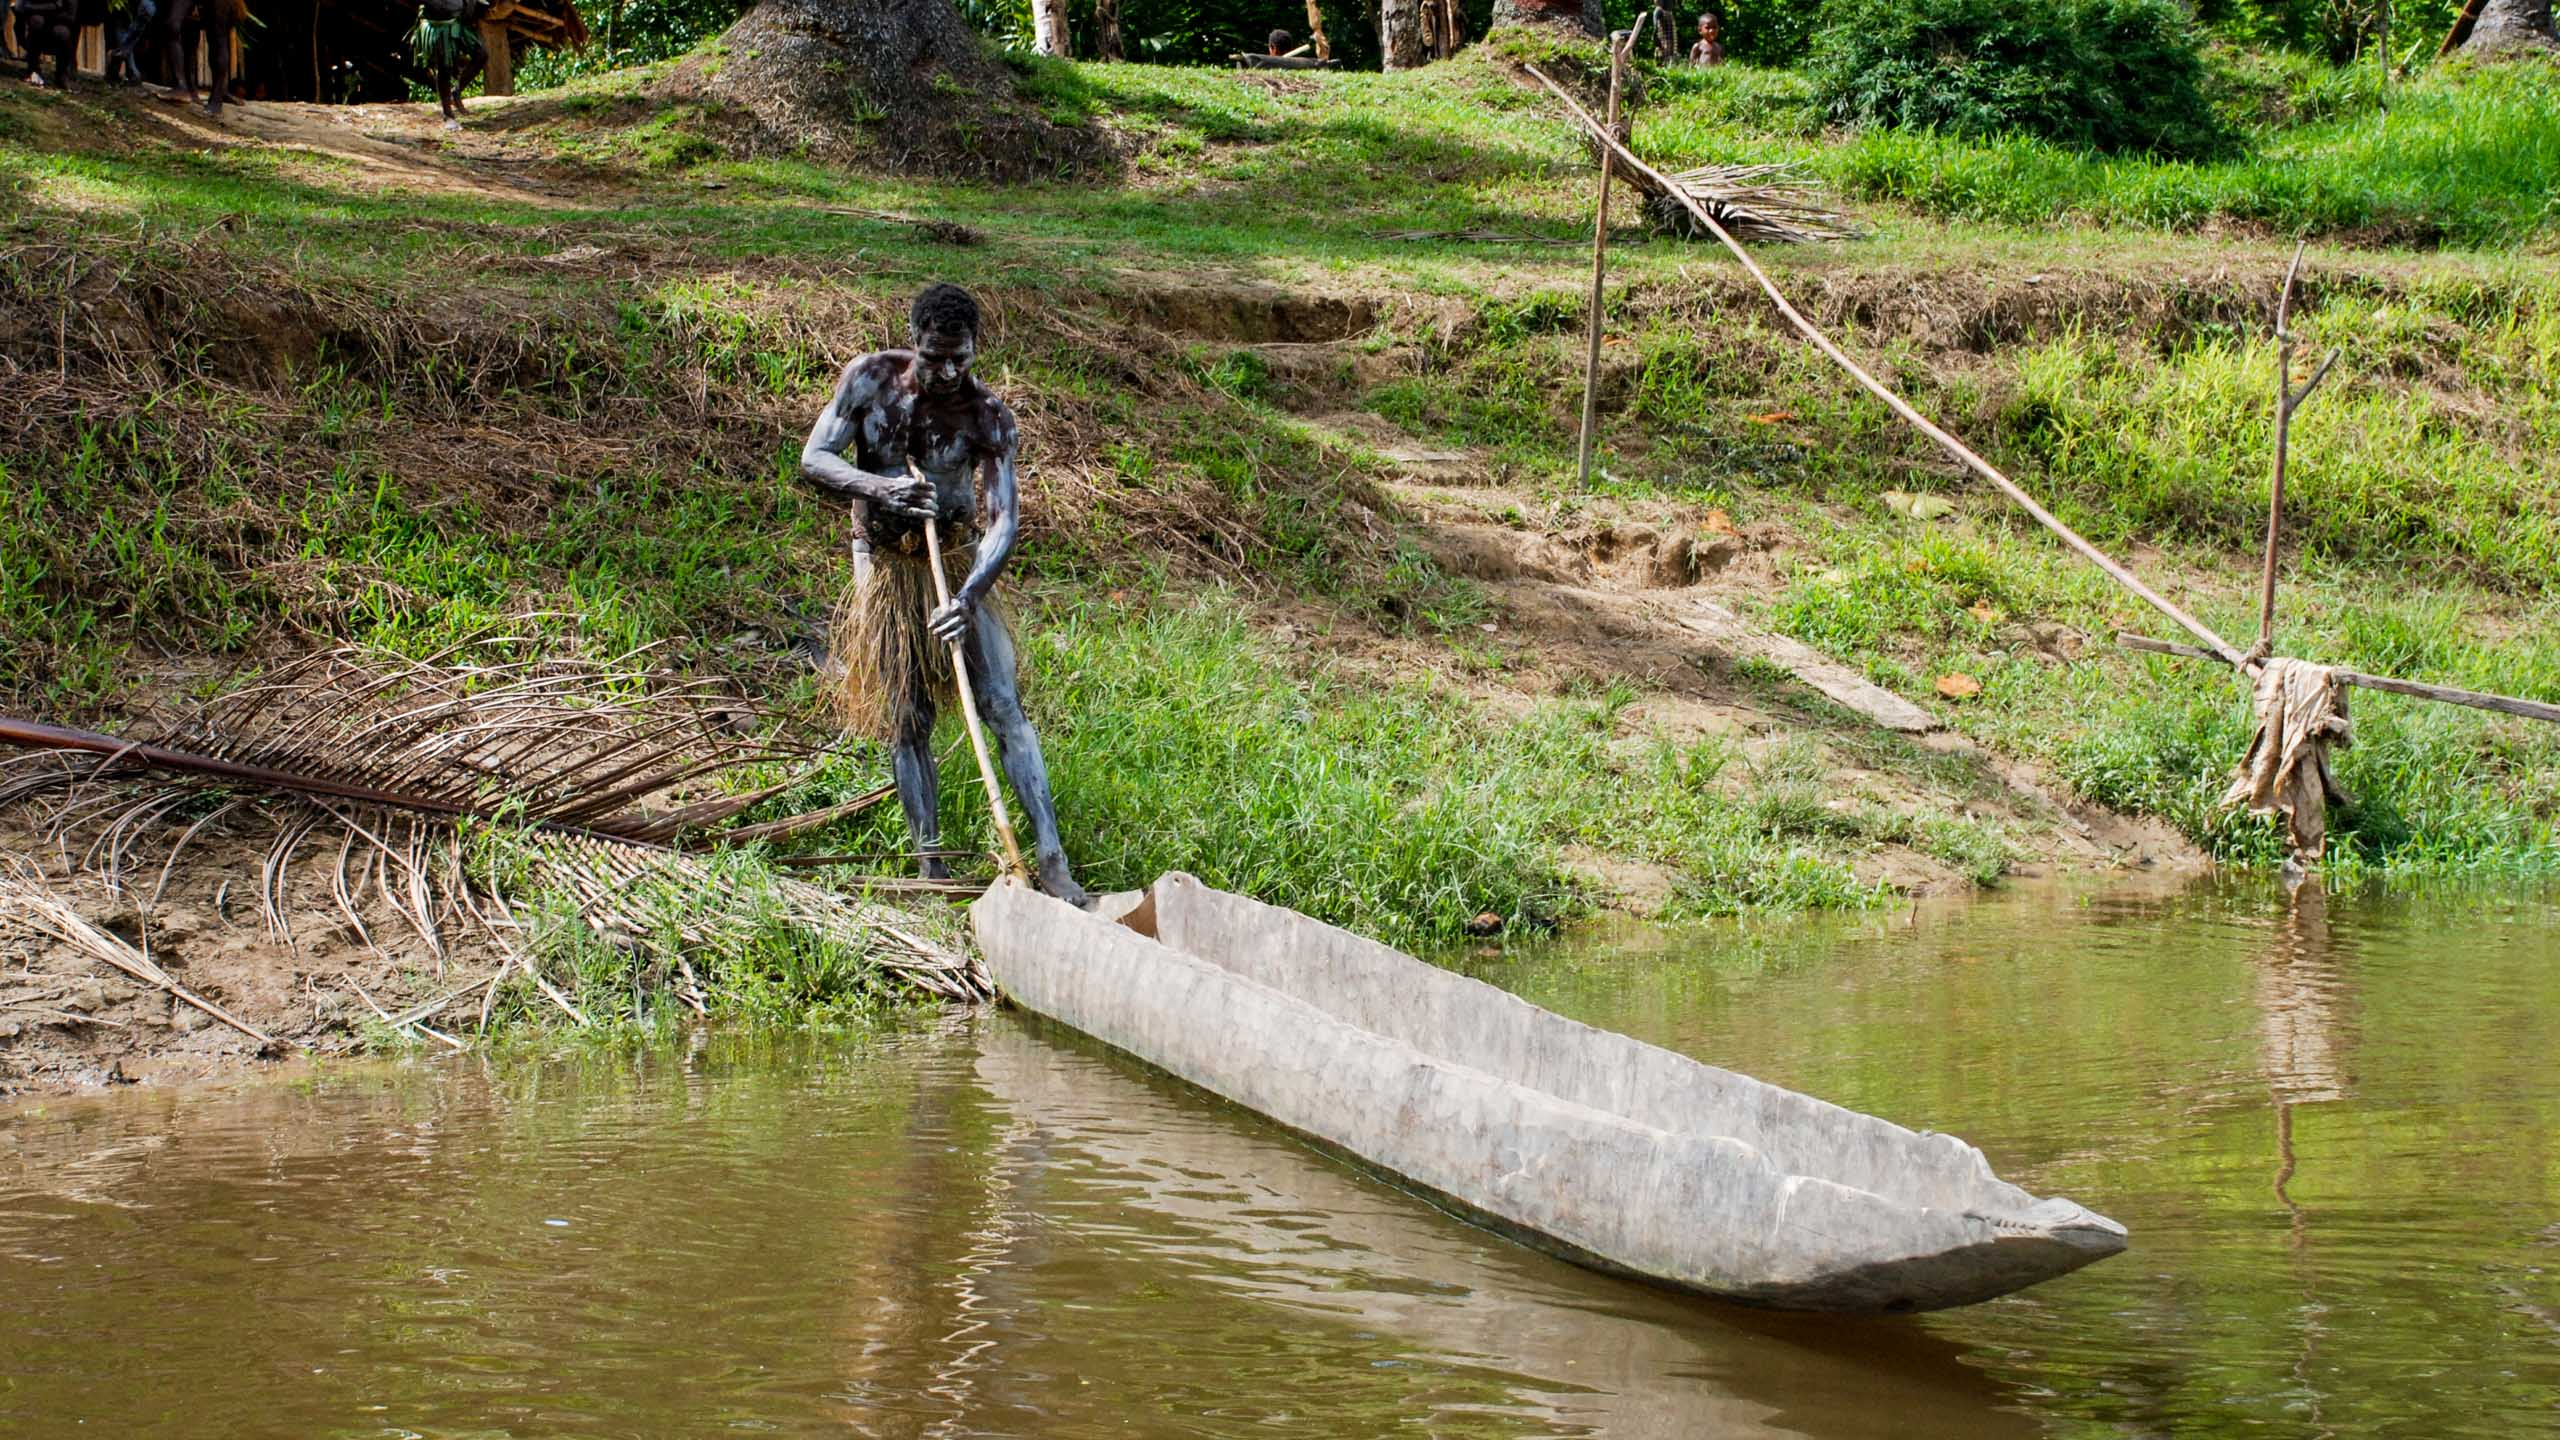 Papua New Guinea man pushes boat into river